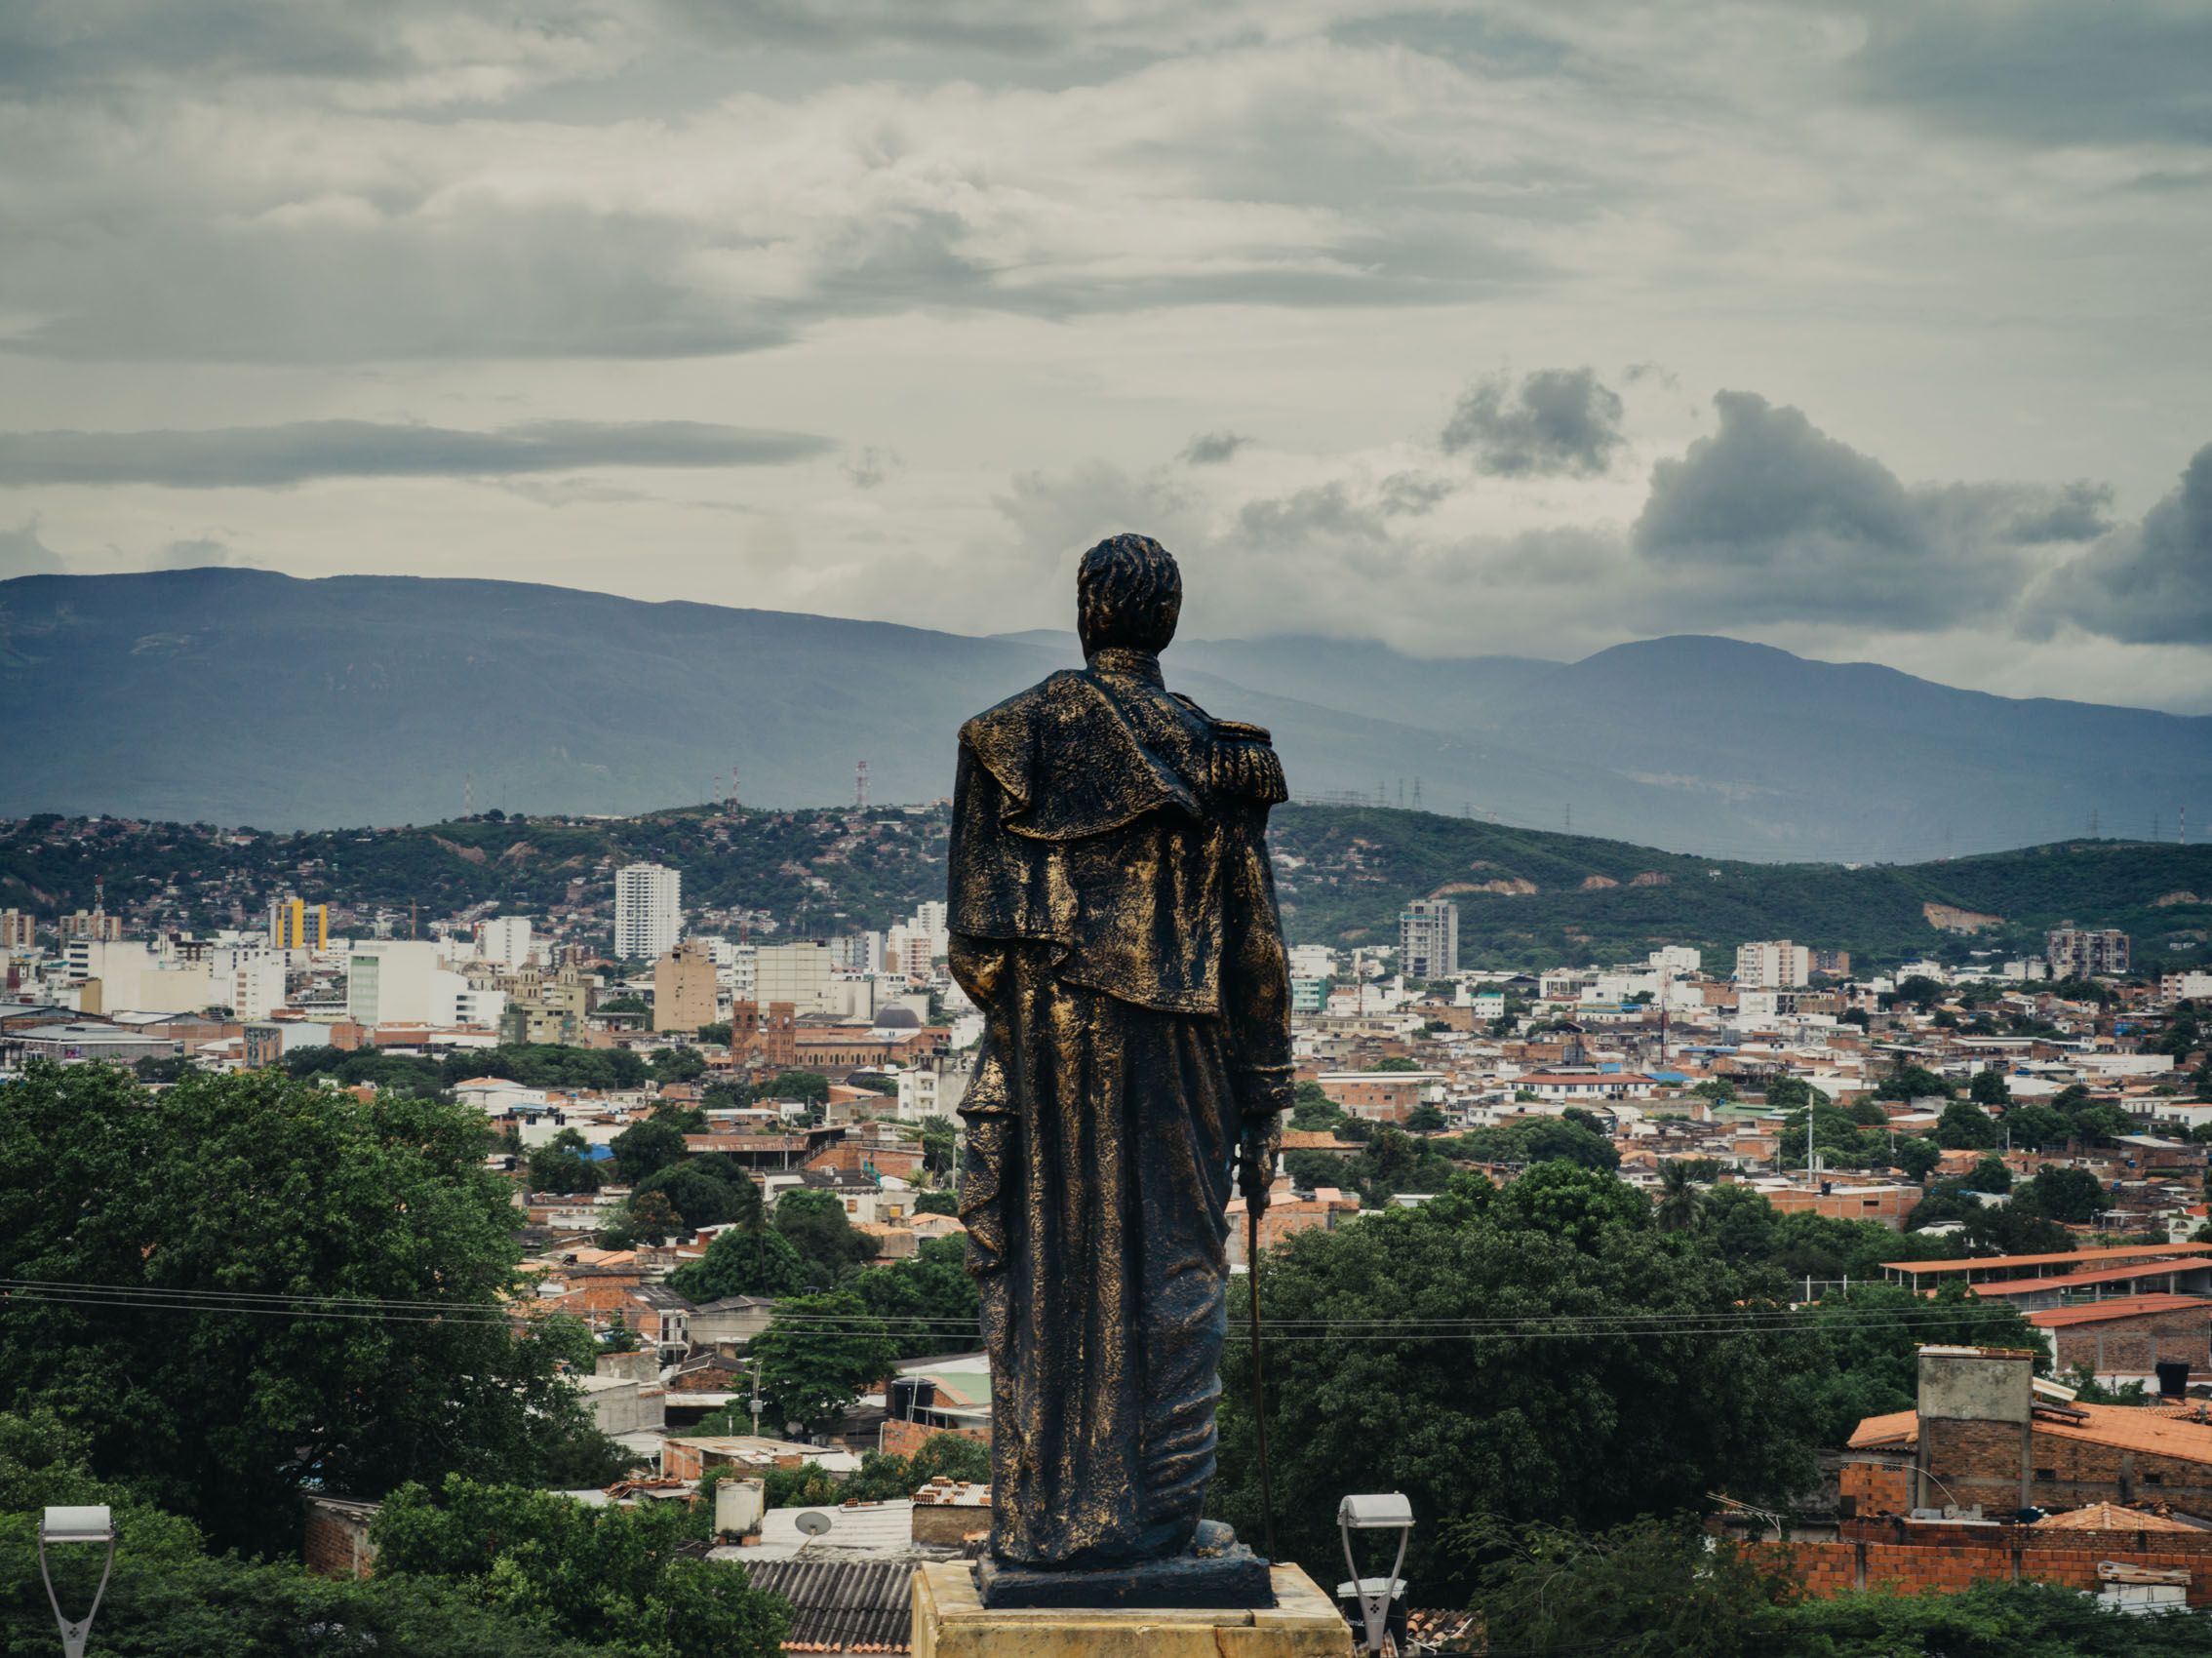 A statue of Simón Bolí­var stands atop a hill overlooking the city of Cúcuta, Colombia